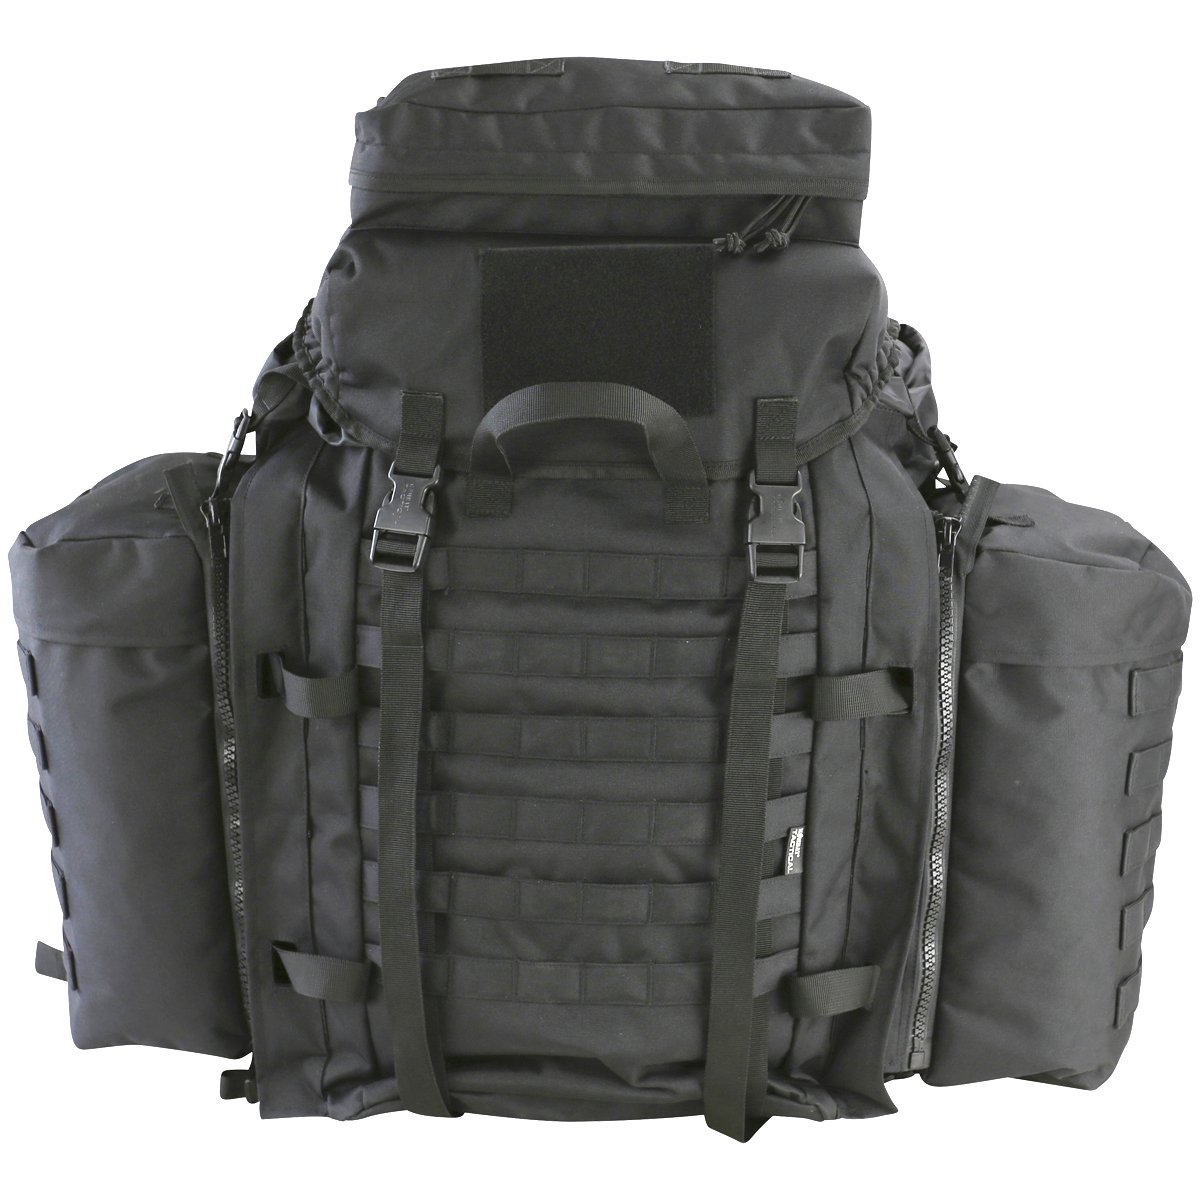 Kombat UK Unisex Tactical Assault